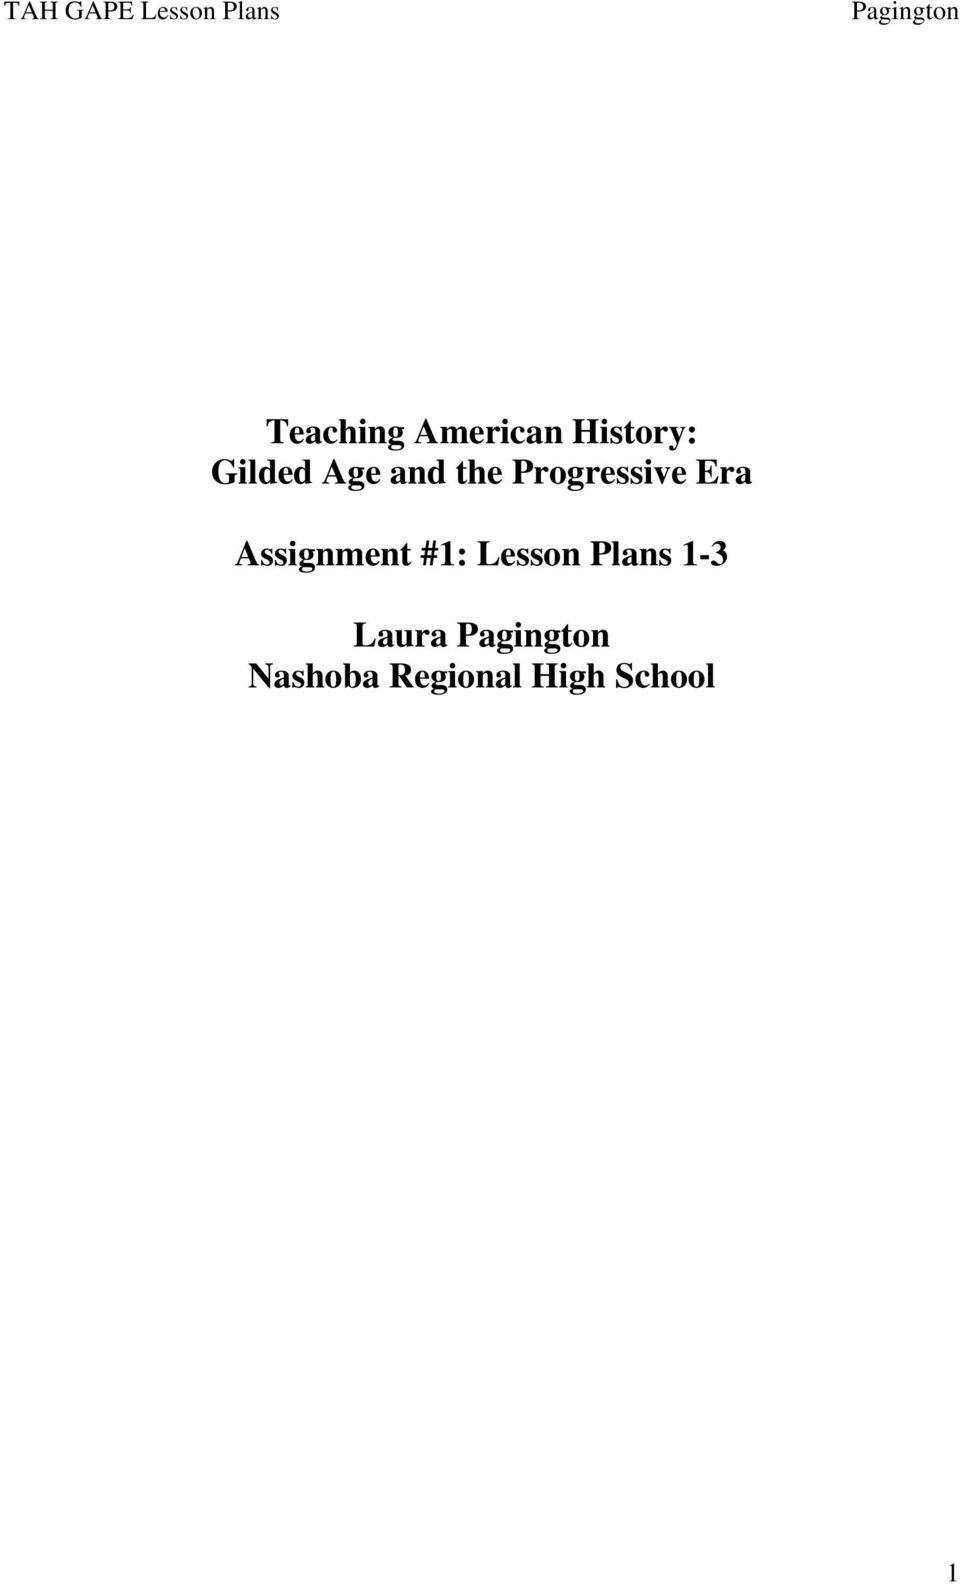 worksheet Progressive Era Worksheets teaching american history gilded age and the progressive era assignment 1 lesson plans